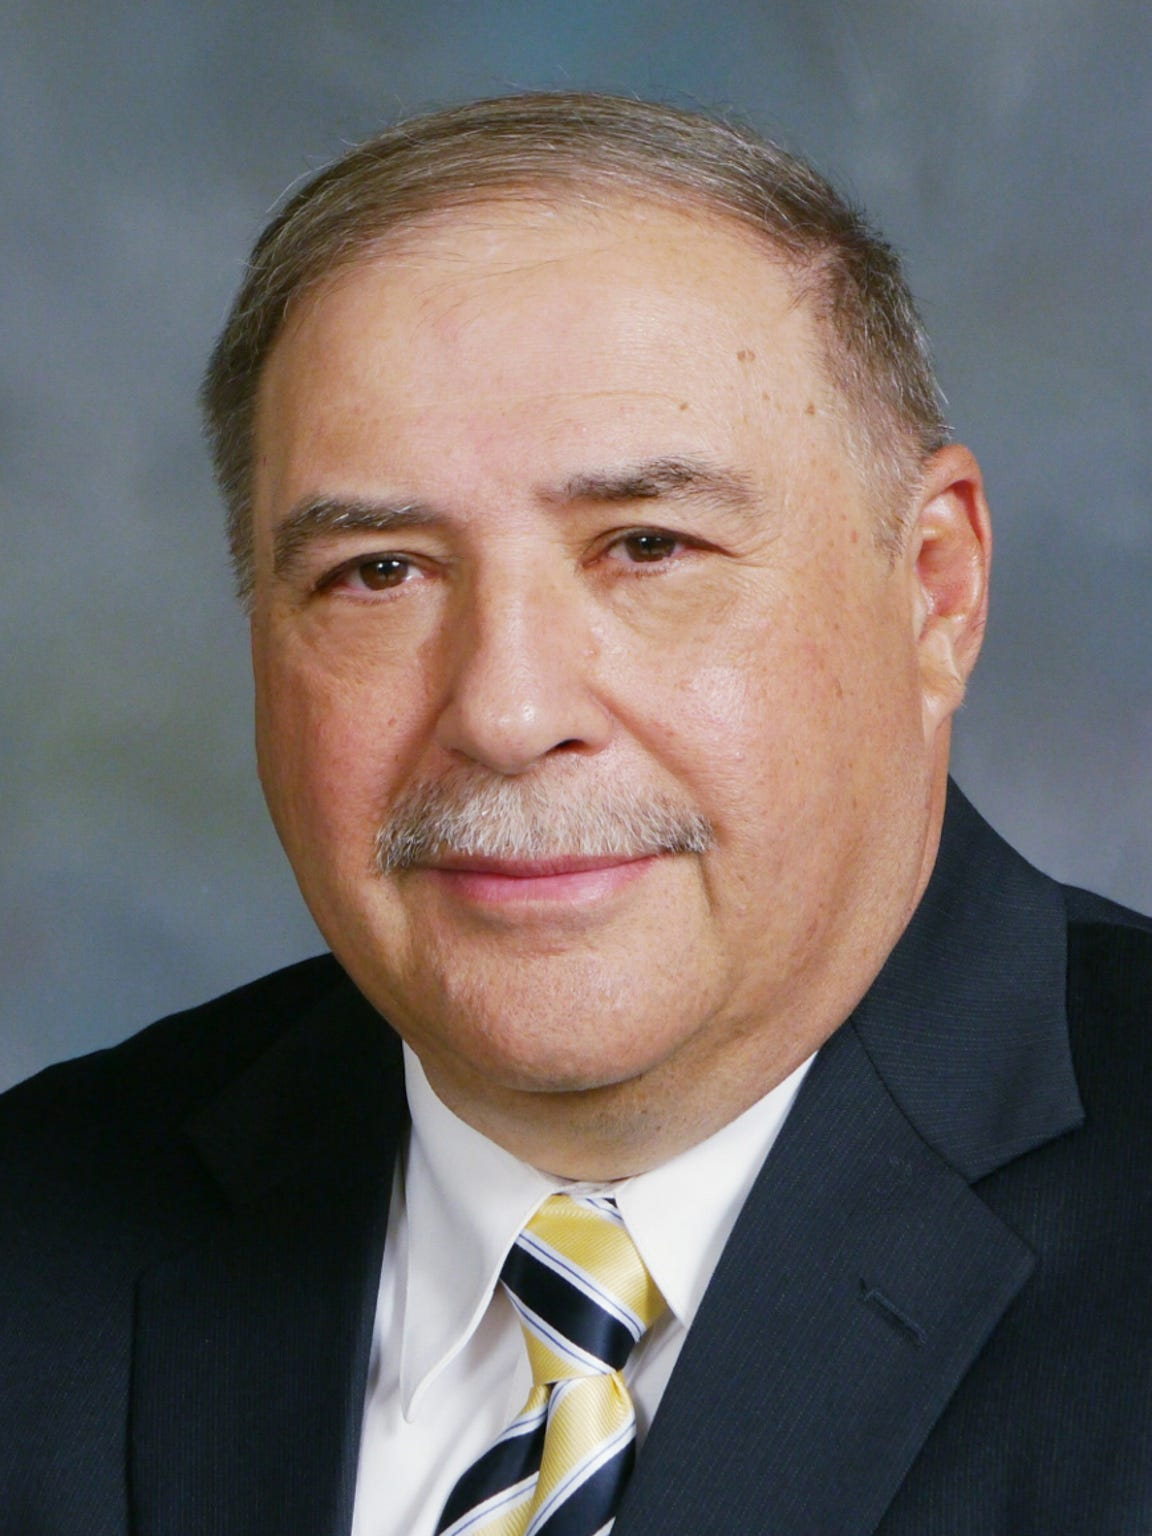 A. Lee Ervin has served as Commonwealth's Attorney